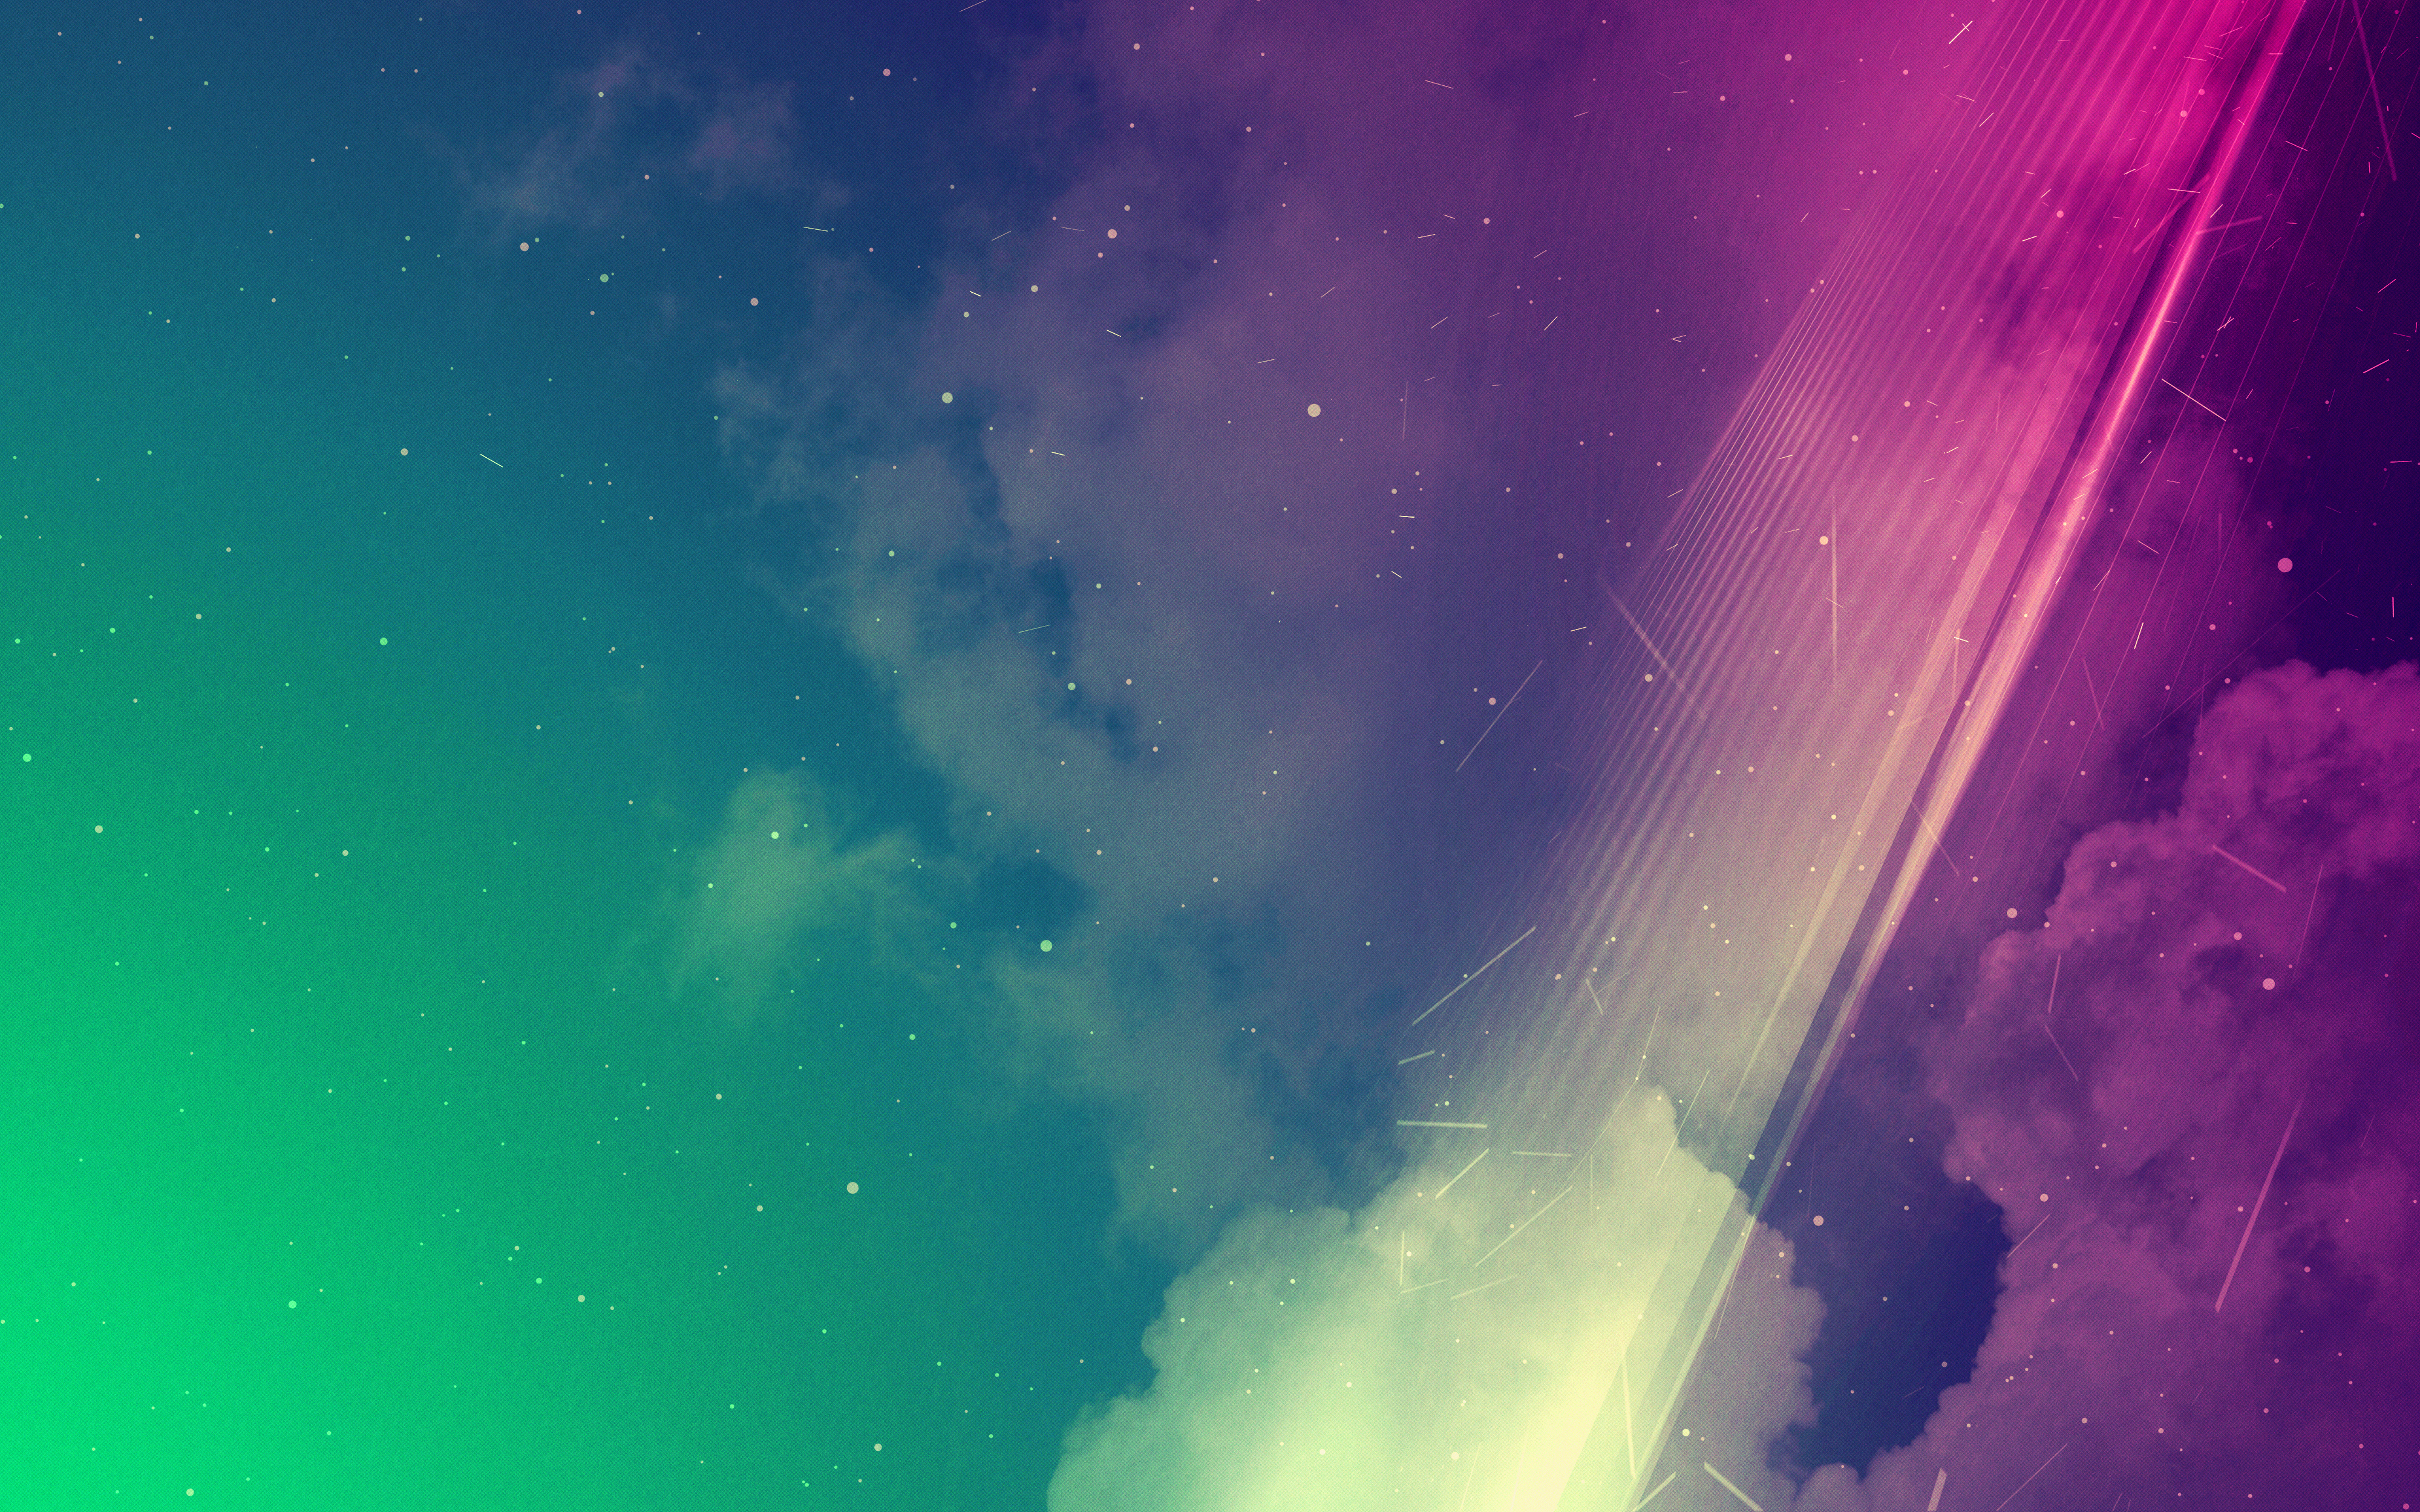 Soft colored abstract background photo